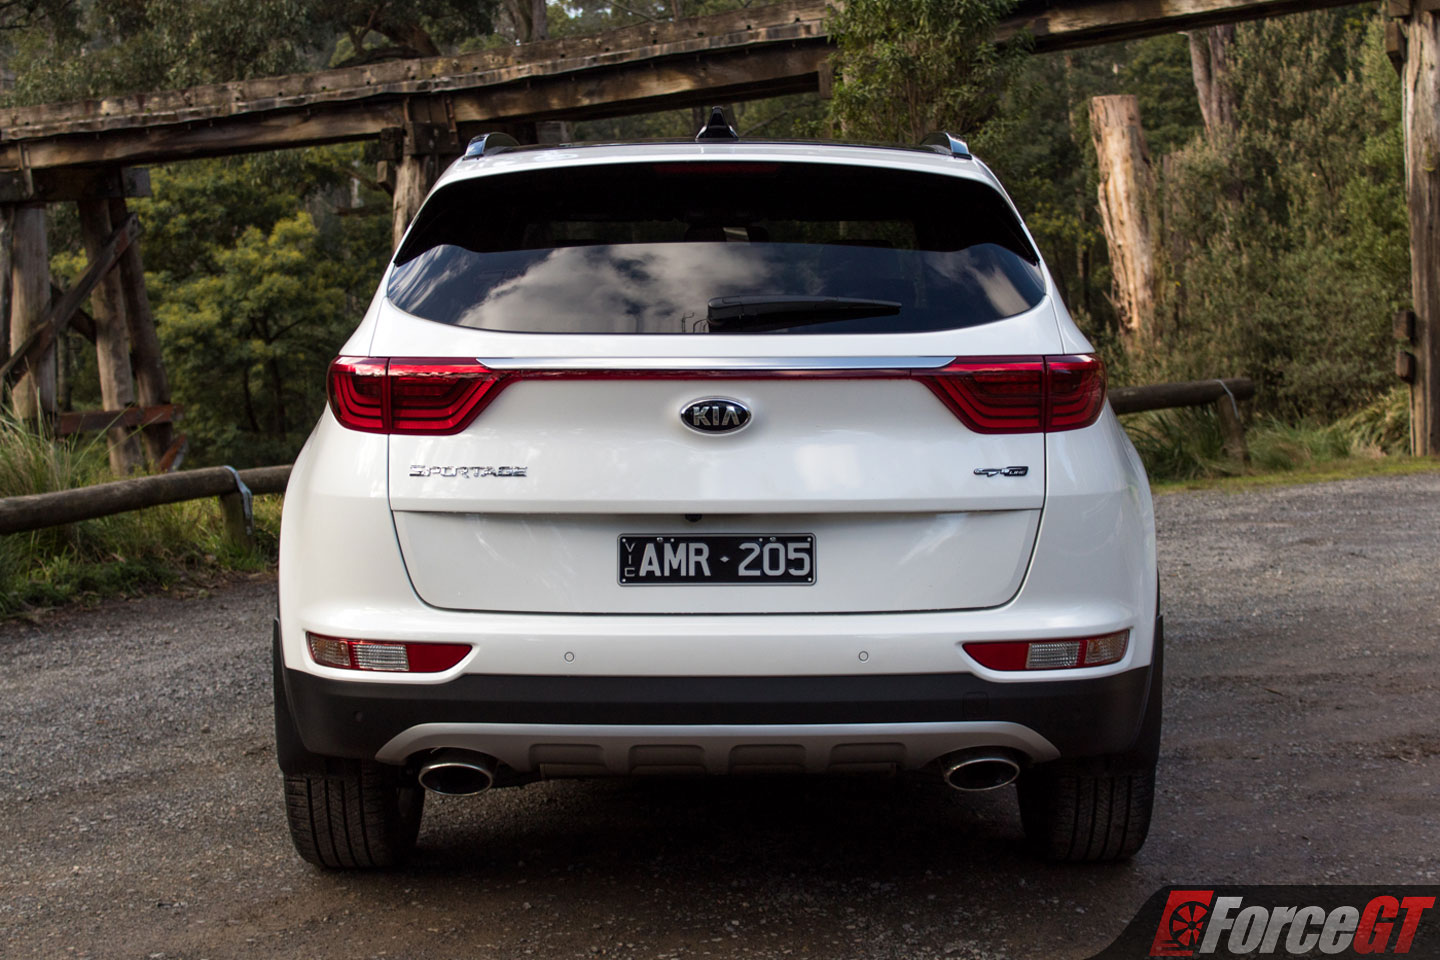 Ford Kuga Towing Capacity >> 2017 Kia Sportage GT-Line Diesel Review - ForceGT.com